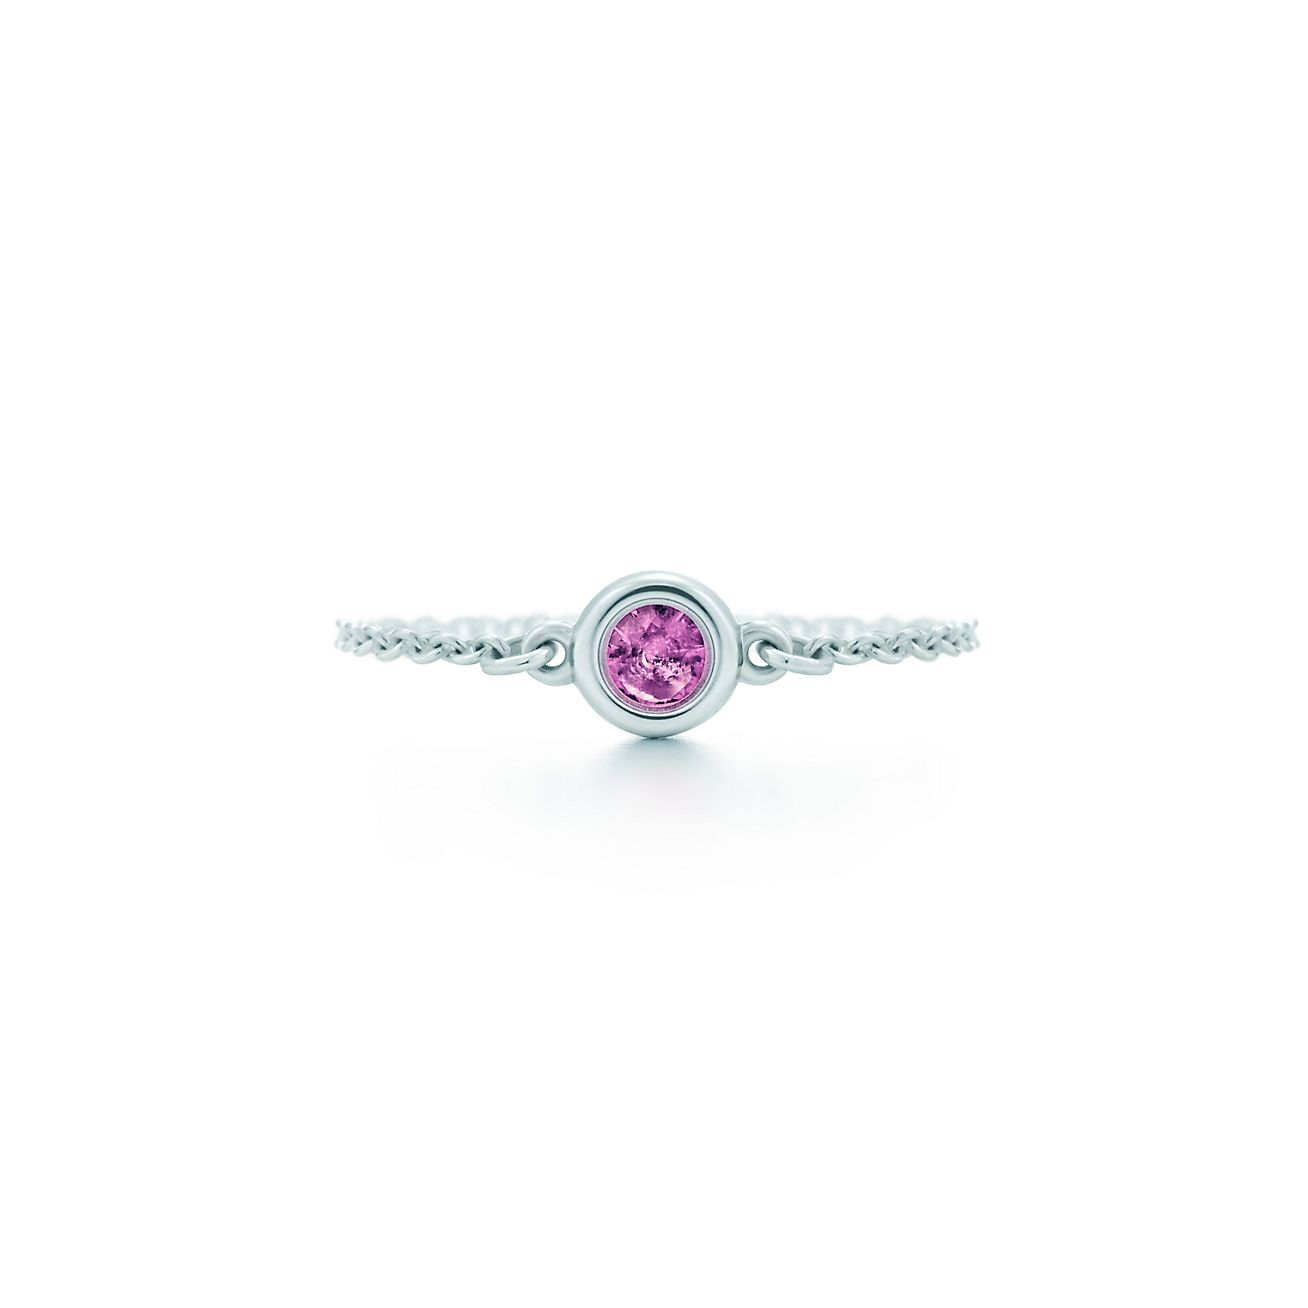 Elsa Peretti Diamonds by the Yard ring in sterling silver - Size 4 Tiffany & Co.